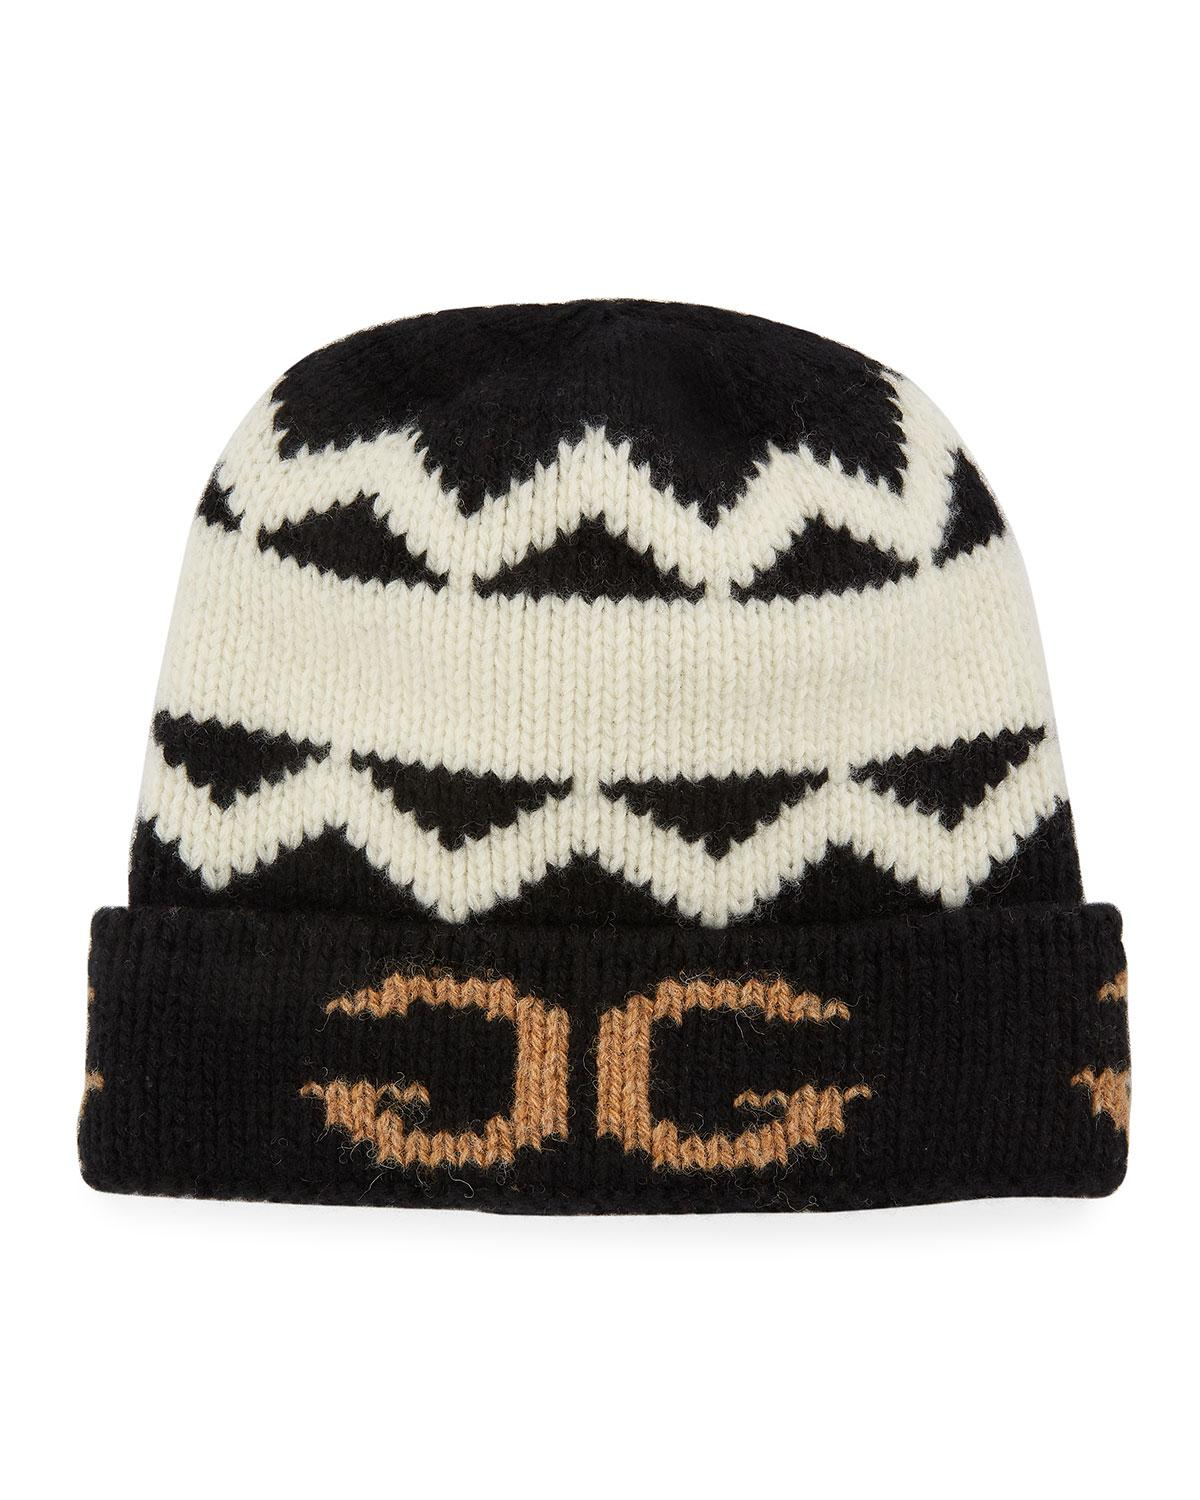 187e19f5 Lyst - Gucci Men's Peruss Logo-knit Beanie Hat in Black for Men